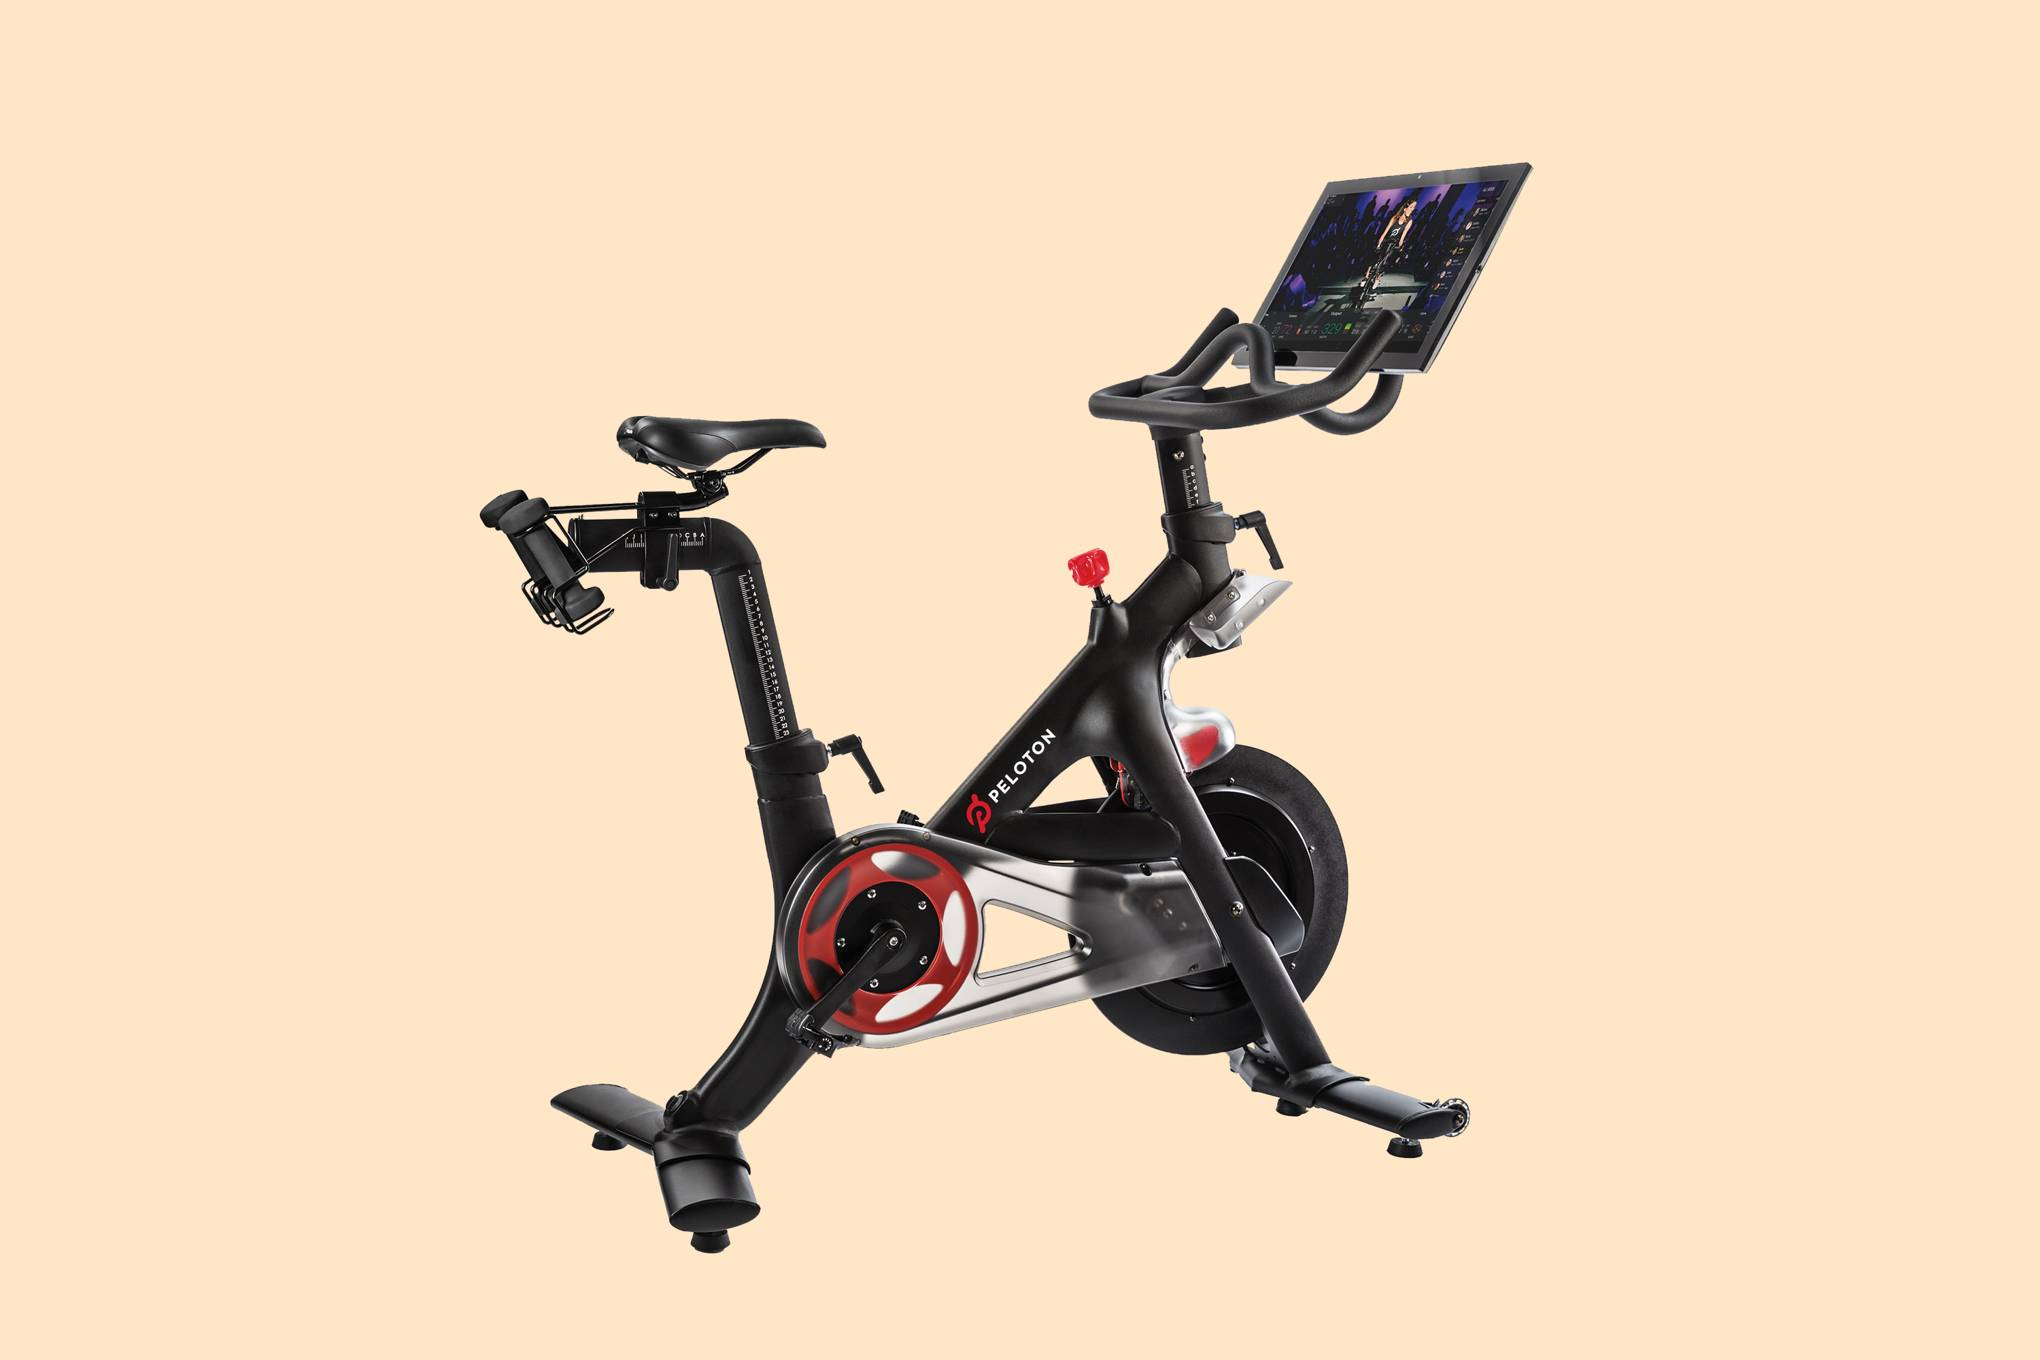 Cult Spinning Craze Peloton Is Bringing Its 2000 Bikes To The Uk Full Bike Pro M Wired